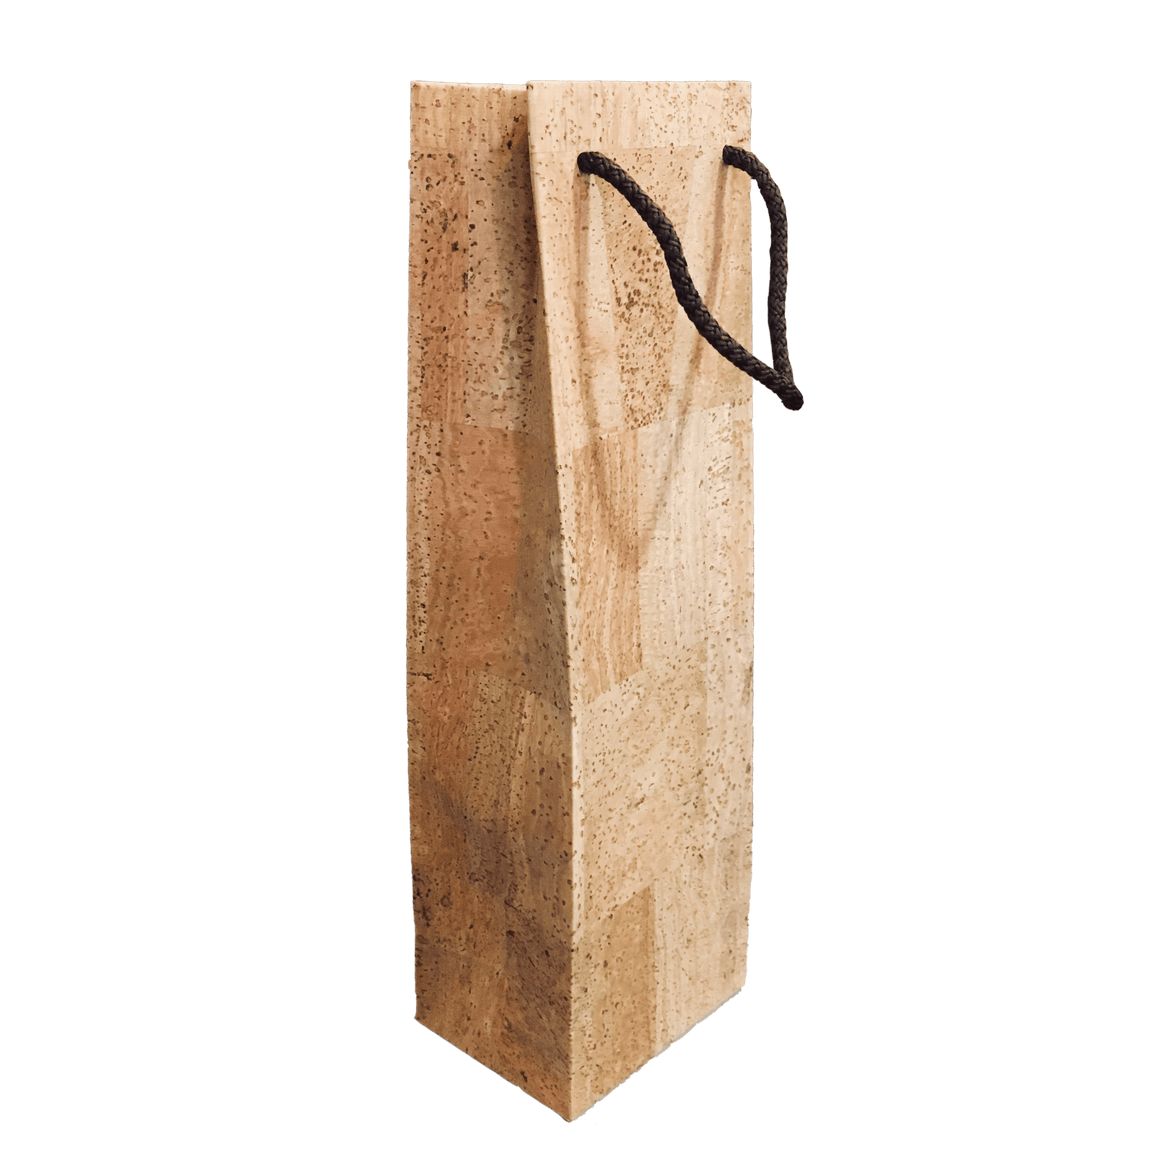 Cork Gift Wine Bag - Naturally Anti-Microbial Hypoallergenic Sustainable Eco-Friendly Cork